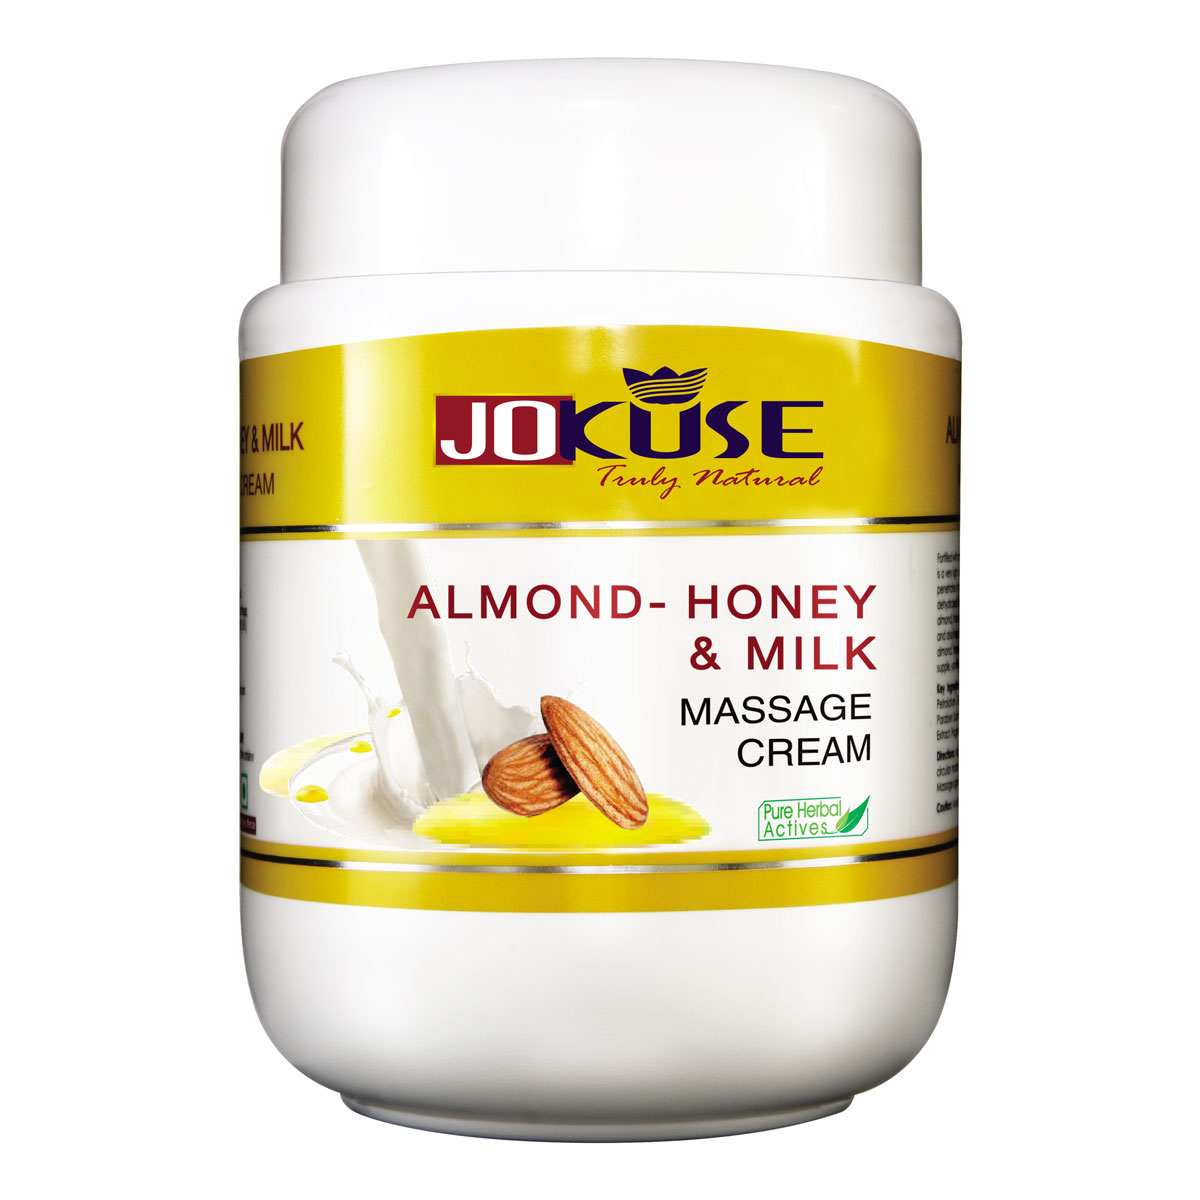 ALMOND HONEY & MILK MASSAGE CREAM